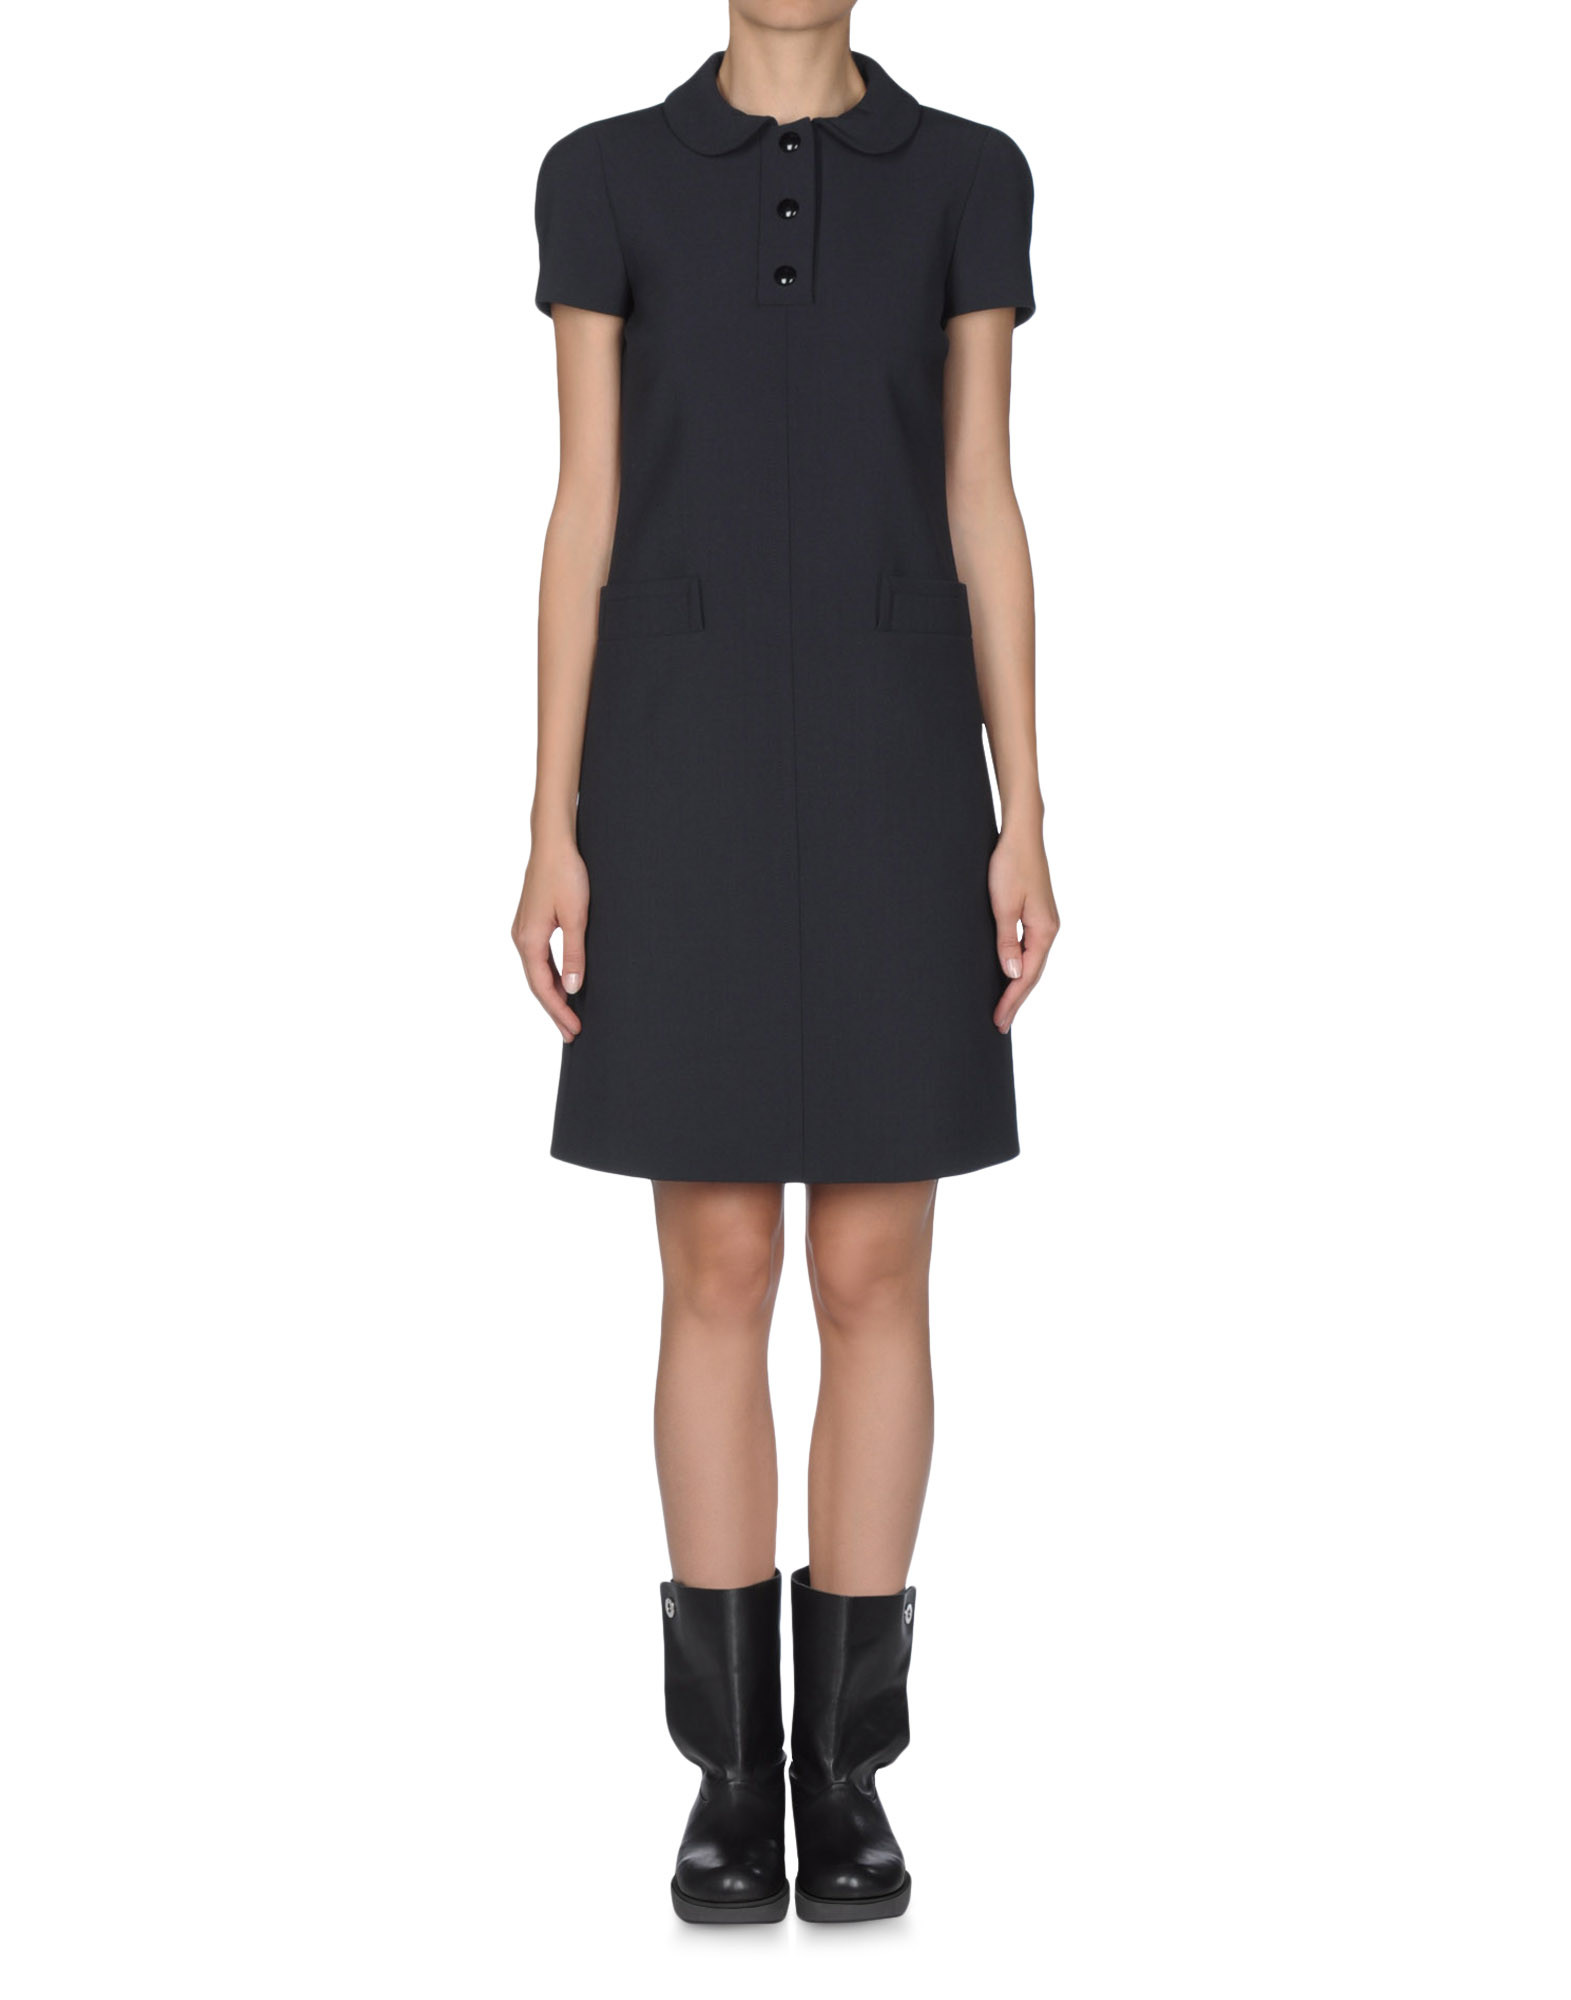 3/4 length dress - JIL SANDER NAVY Online Store